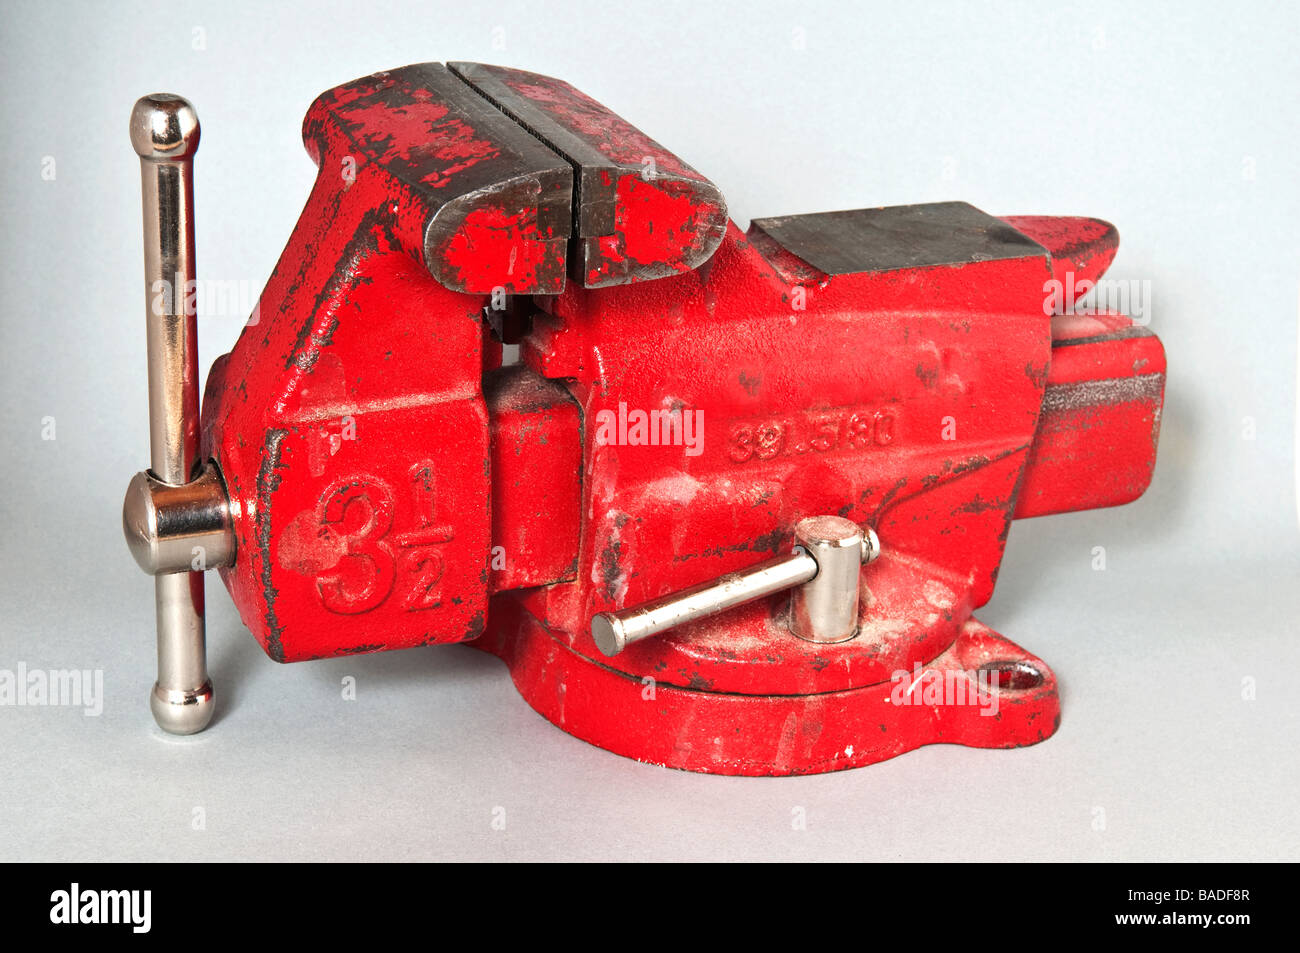 Admirable Red Steel Workbench Vise Stock Photo 23654311 Alamy Beatyapartments Chair Design Images Beatyapartmentscom